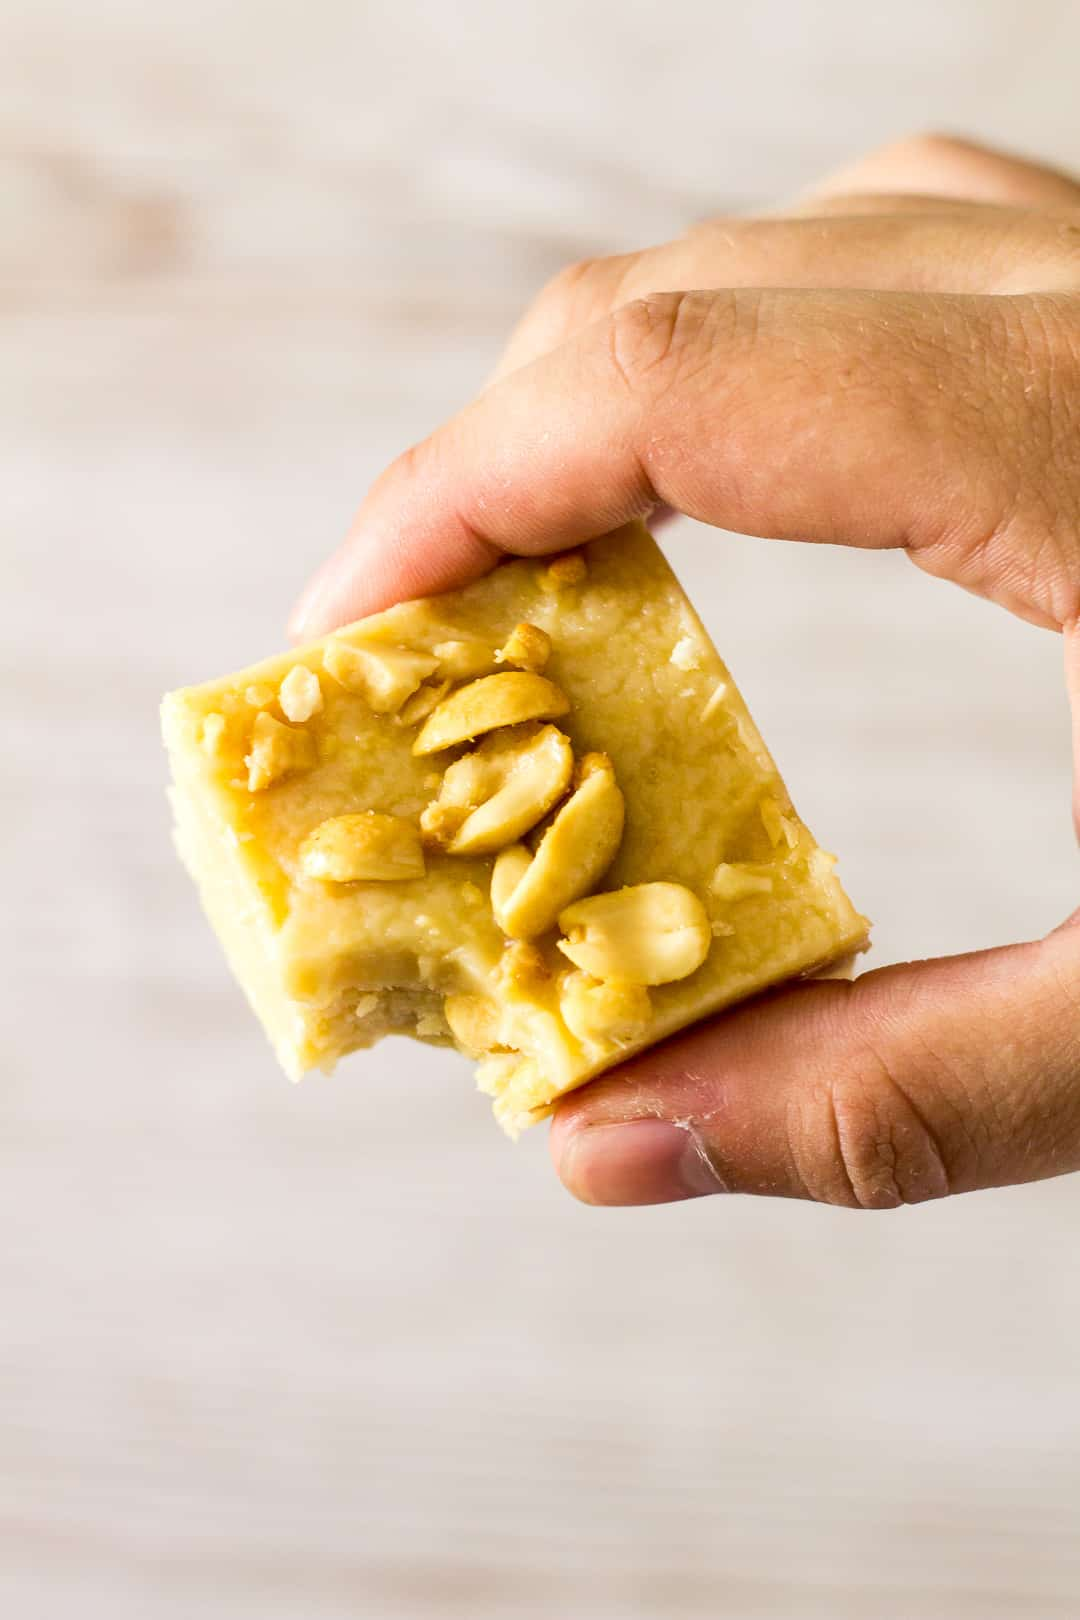 A bitten piece of Peanut Butter Fudge being held up by hand.